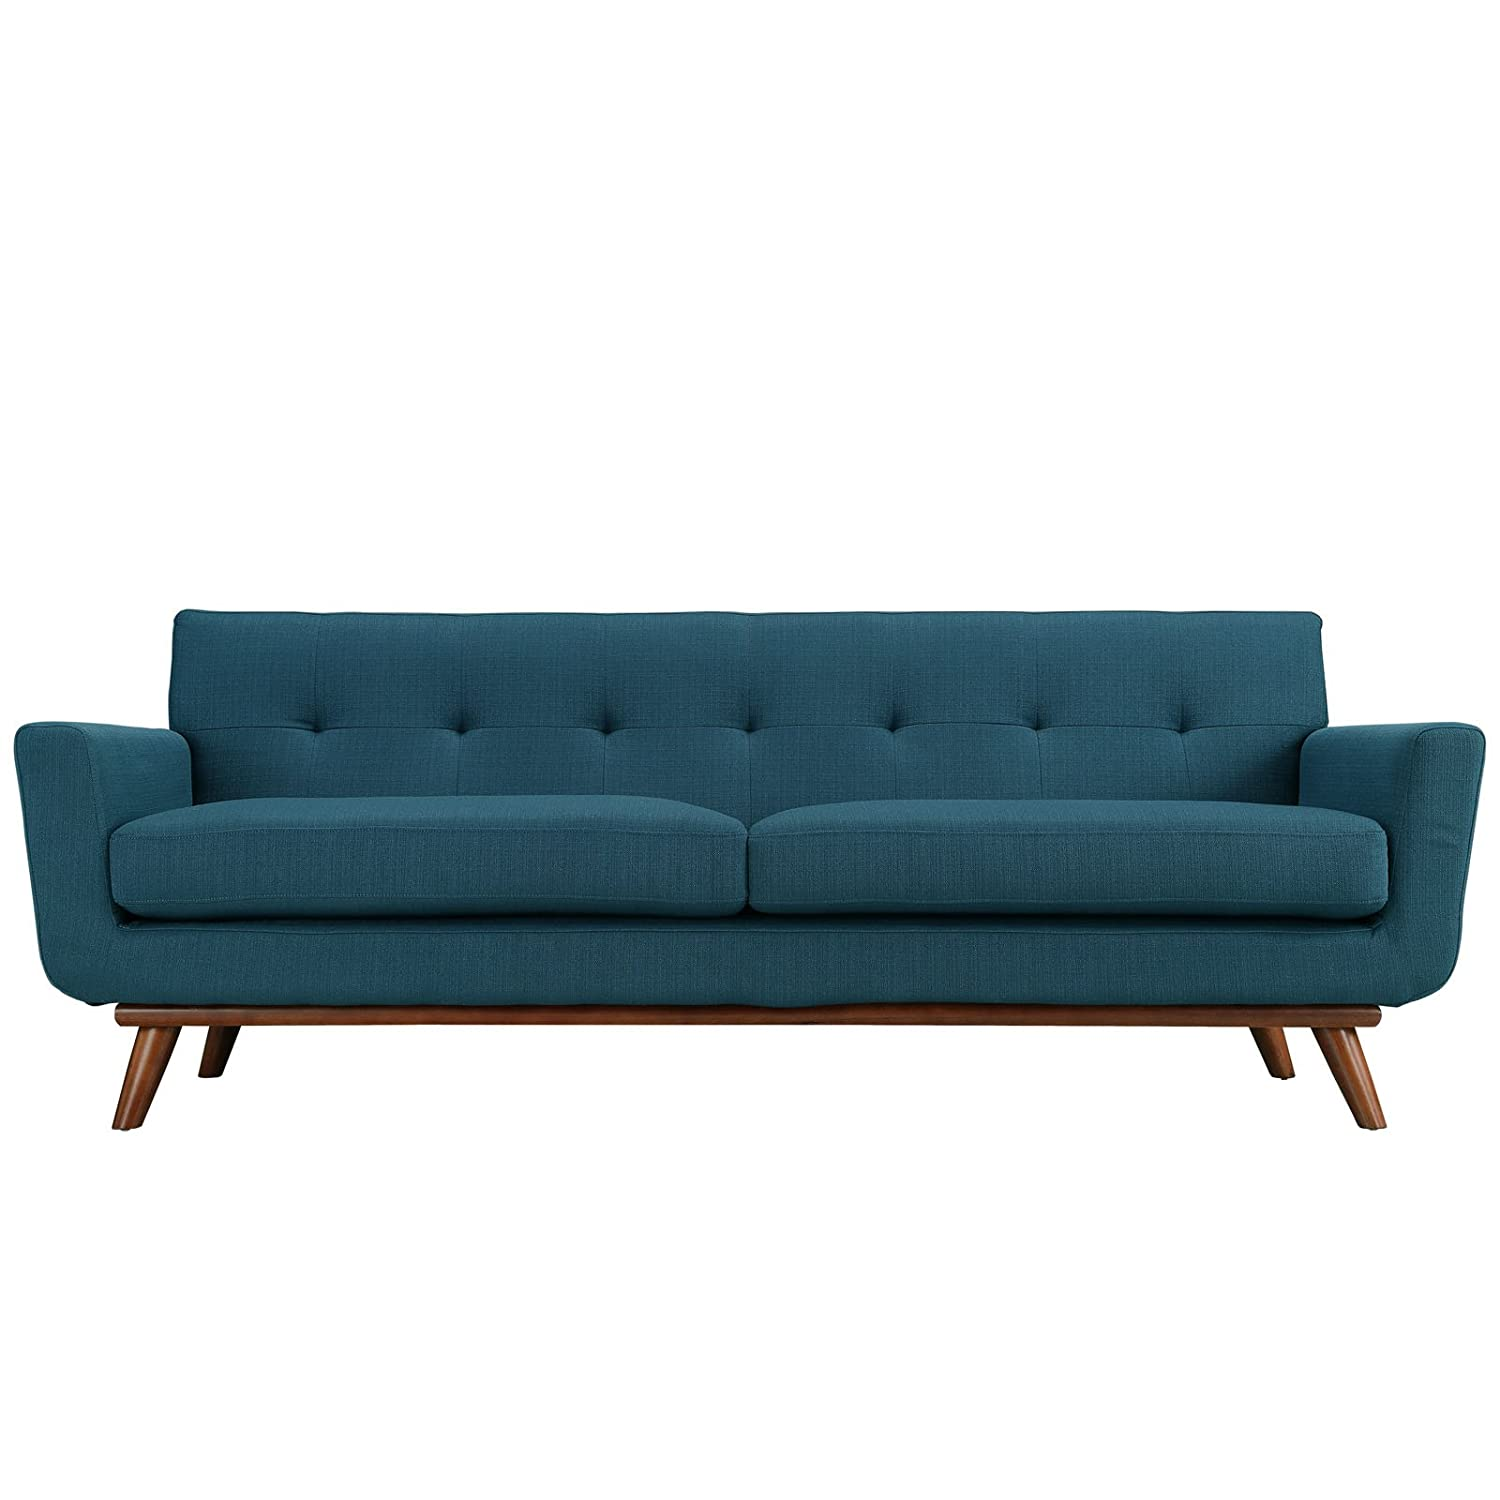 amazoncom modway engage midcentury modern upholstered fabric sofa inazure kitchen  dining. amazoncom modway engage midcentury modern upholstered fabric